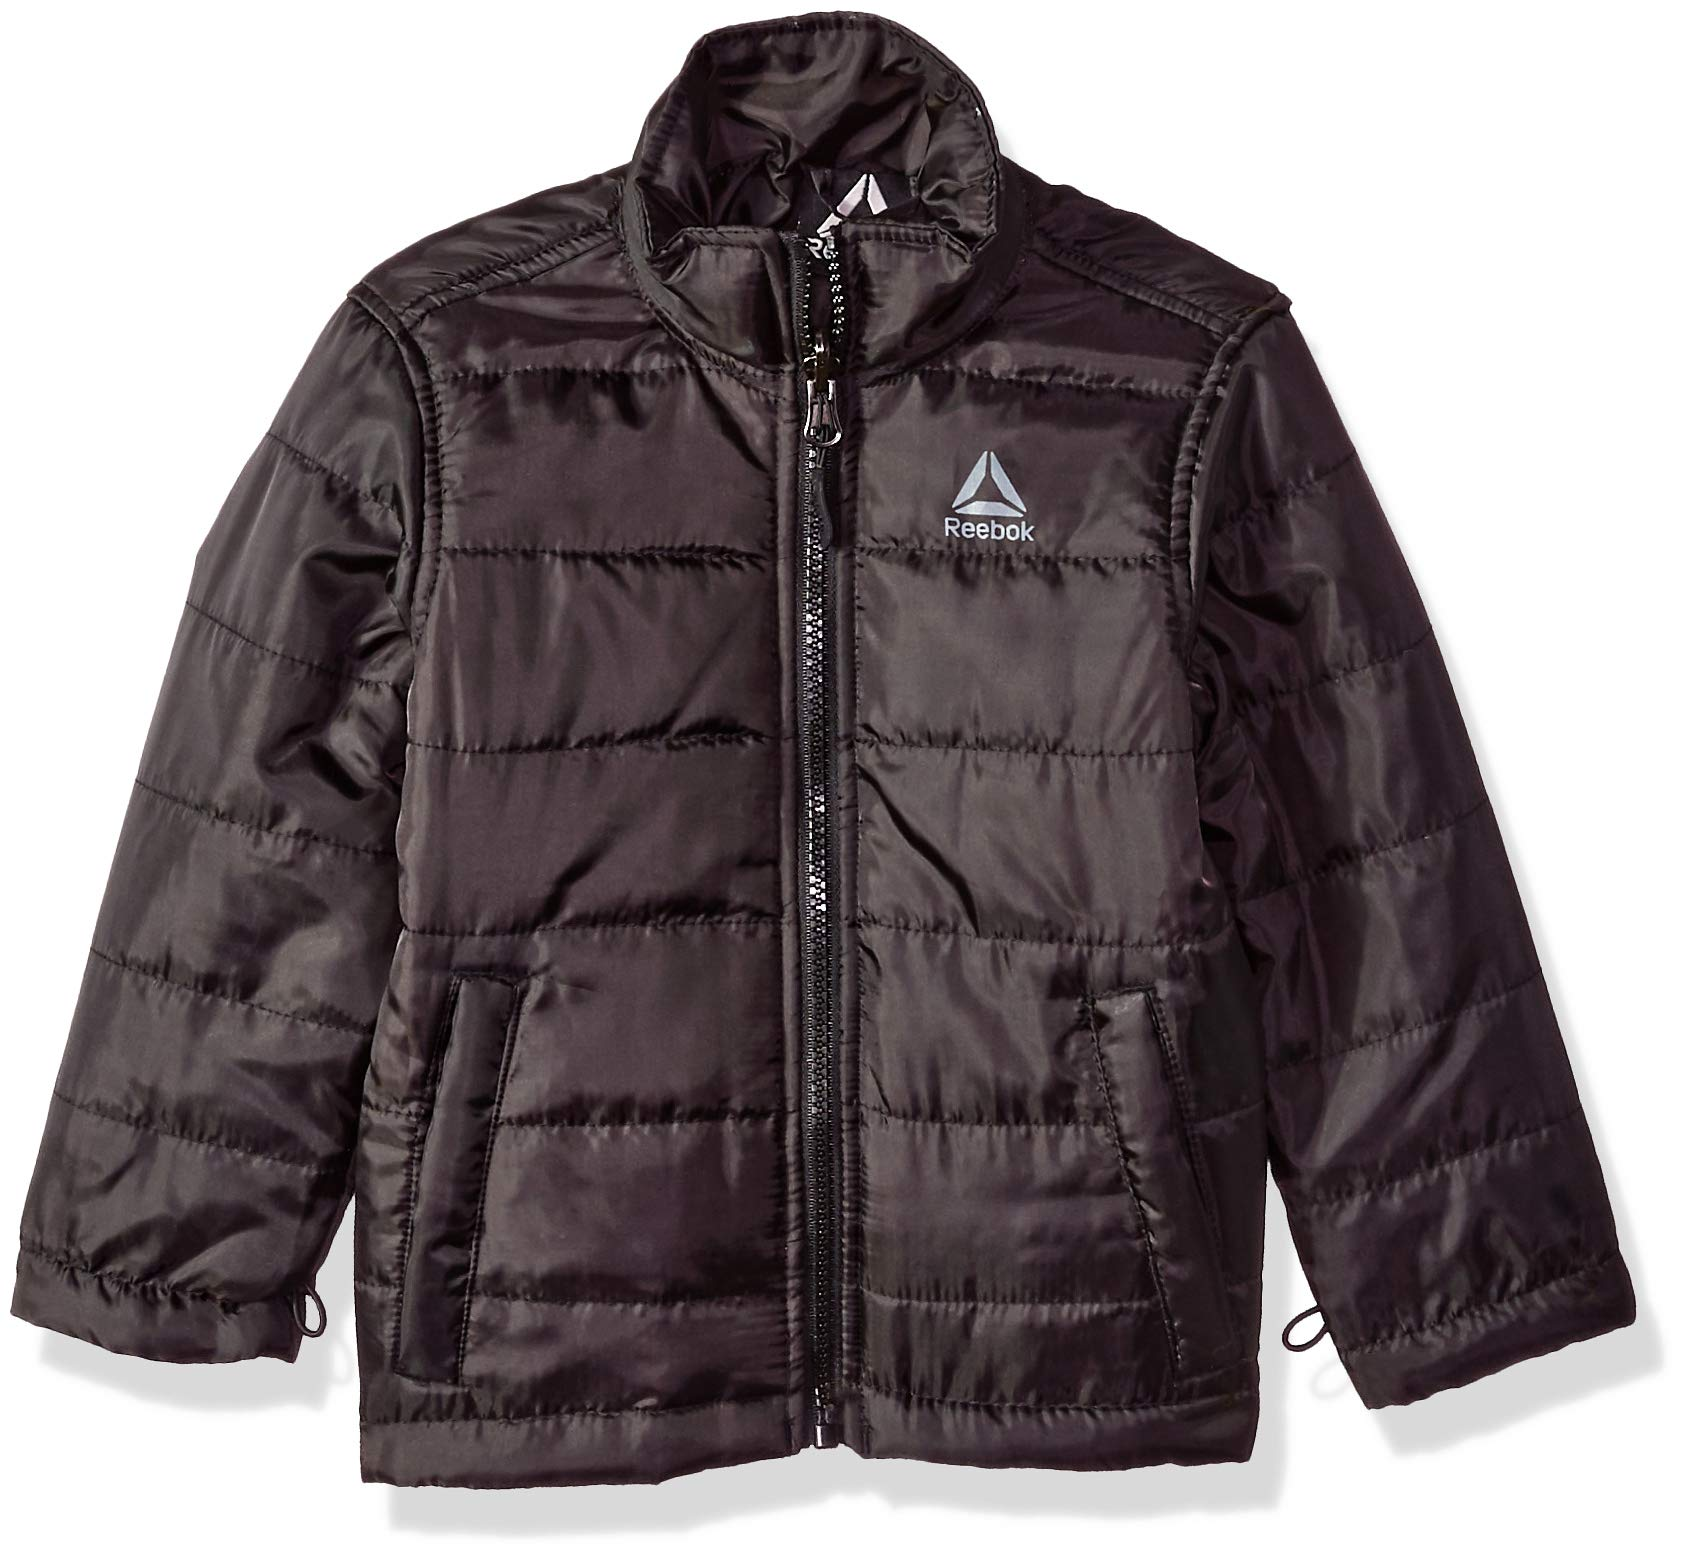 Reebok Boys' Big Active Pockey Systems Jacket, Charcoal, 8 by Reebok (Image #3)